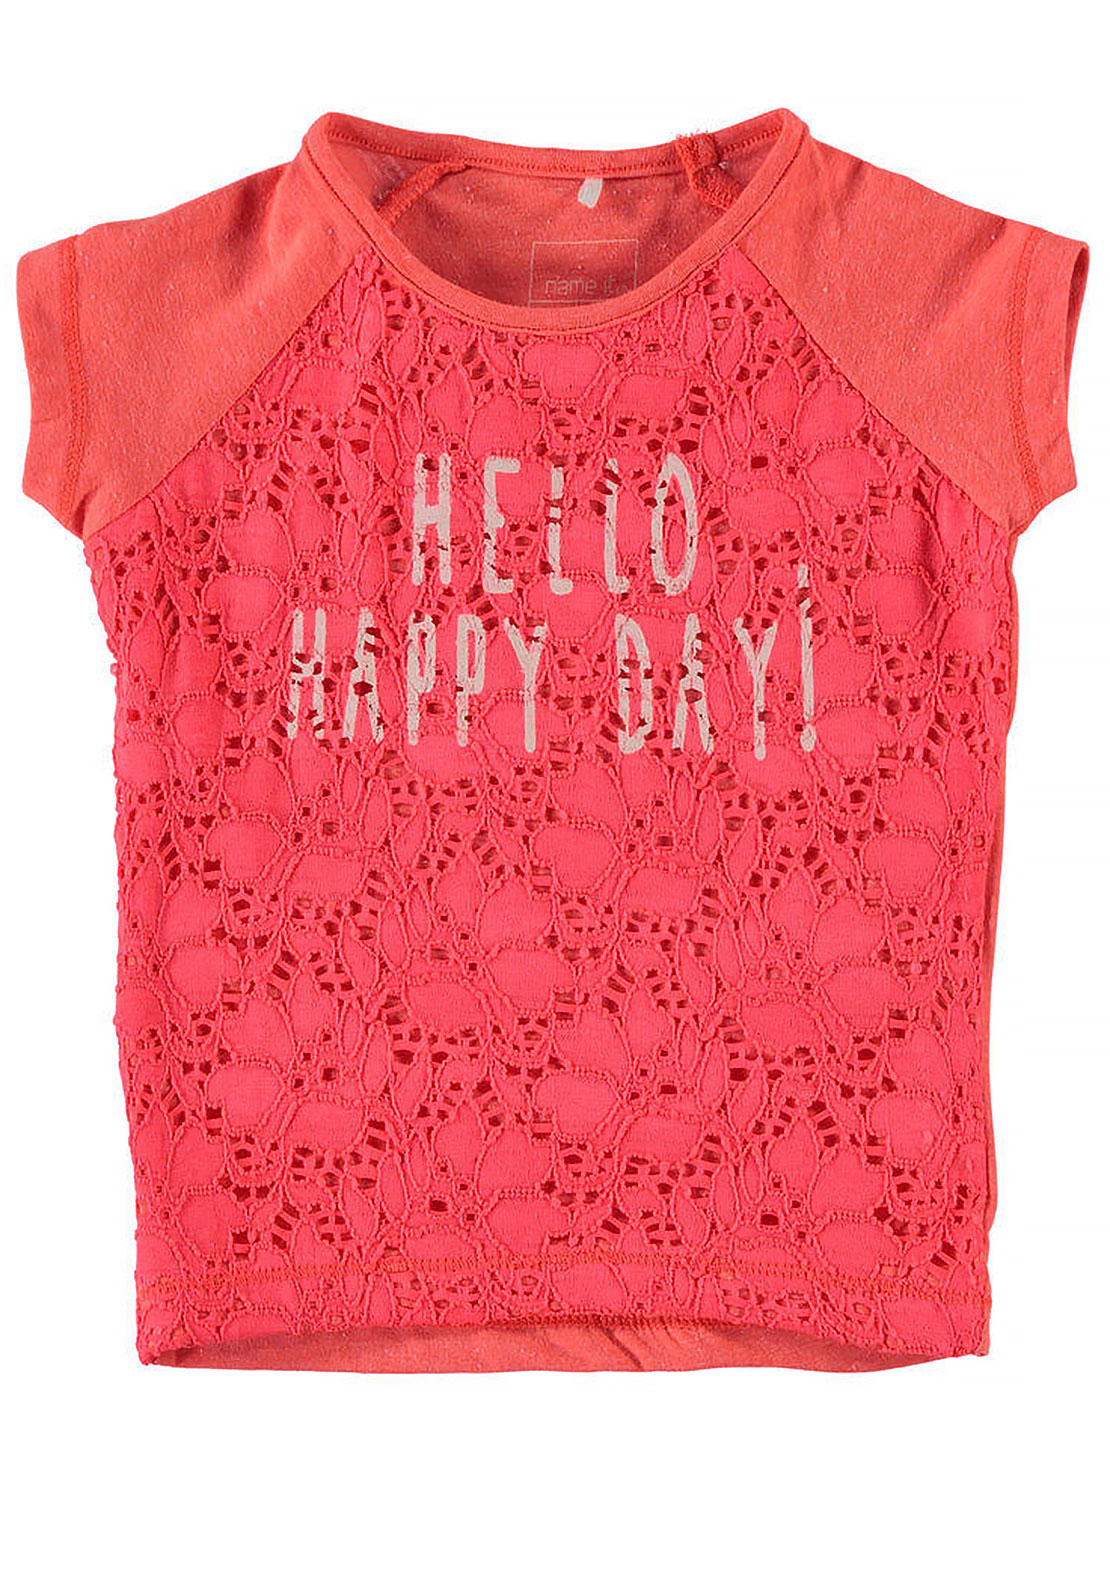 Name It Mini Girls Hakea Lace Happy Day Top, Neon Coral